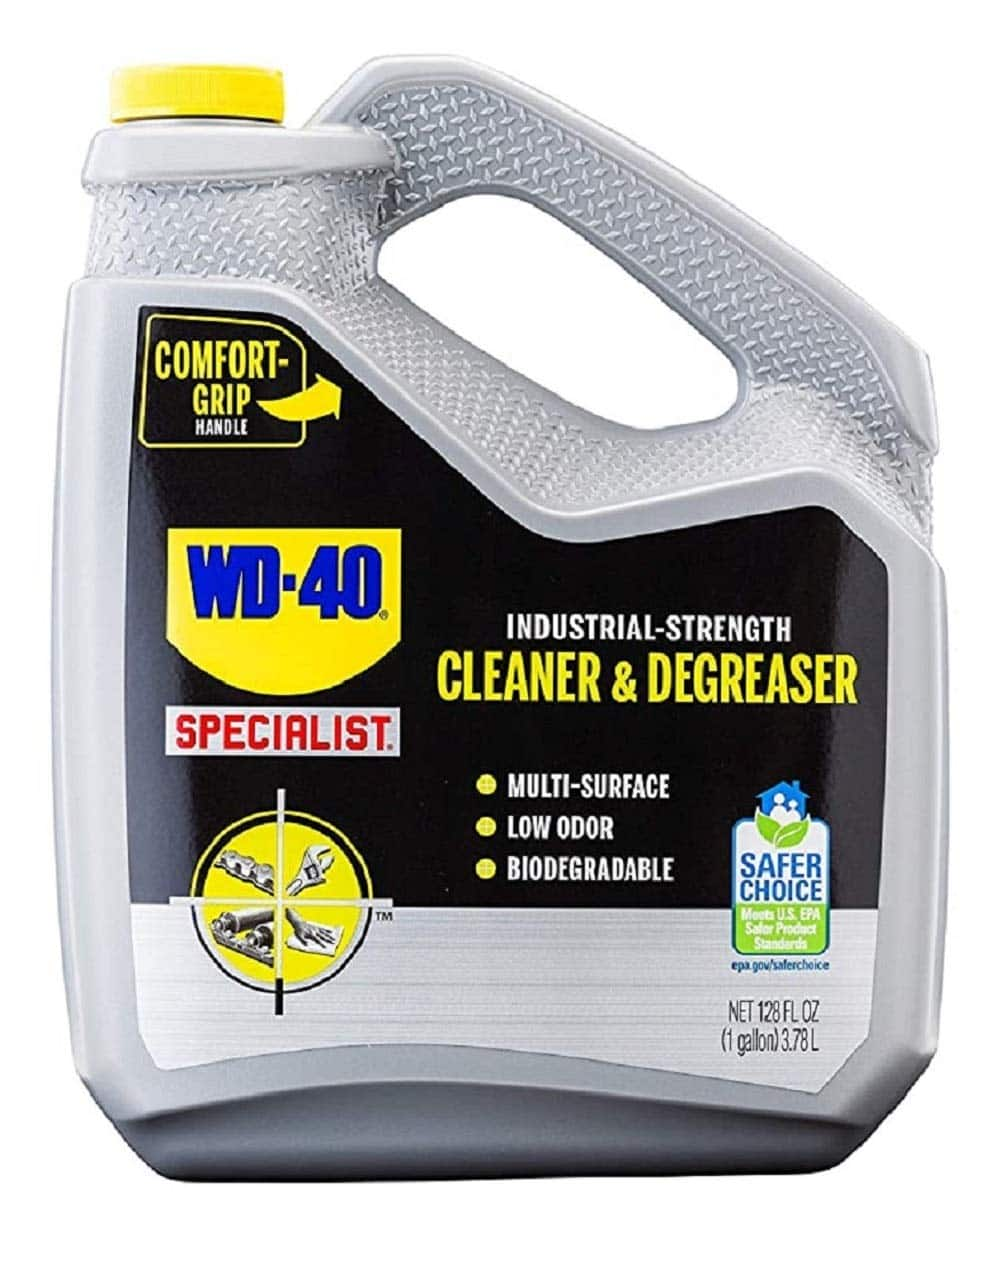 WD-40 Specialist Industrial-Strength Cleaner & Degreaser, 1 Gallon $9.99